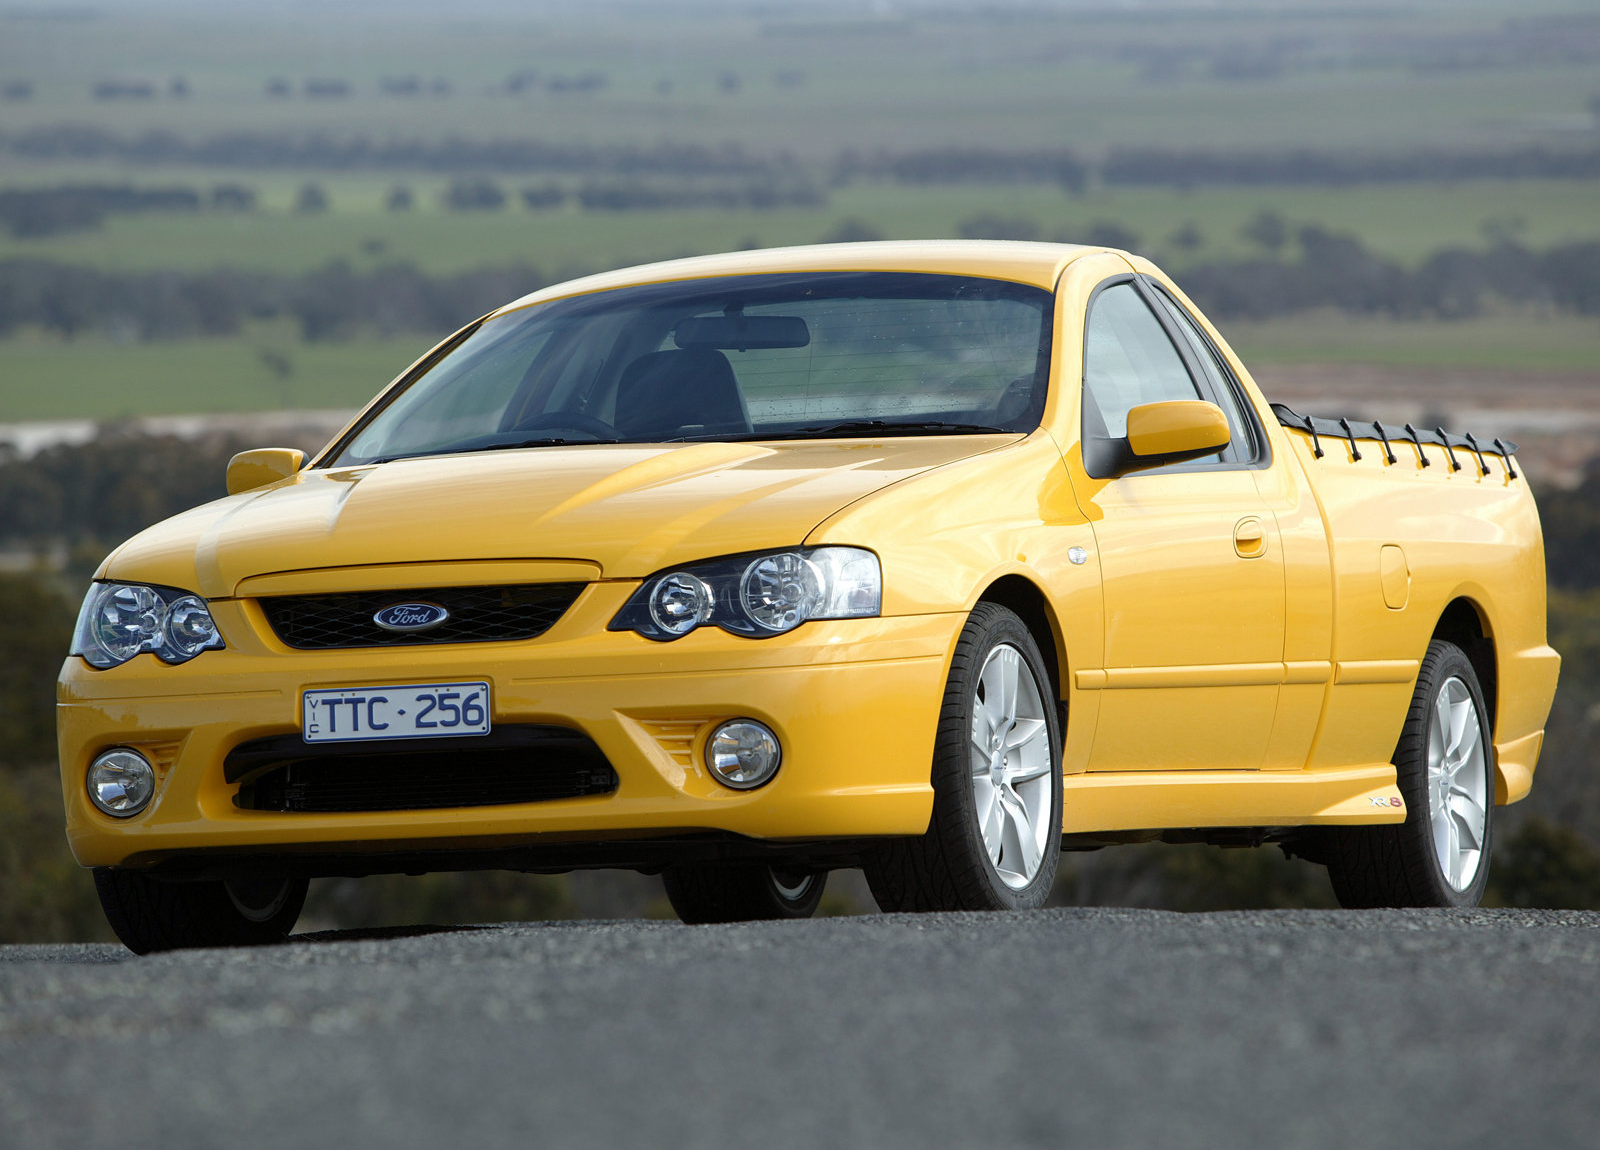 Ford BF Falcon XR8 Ute photo #1